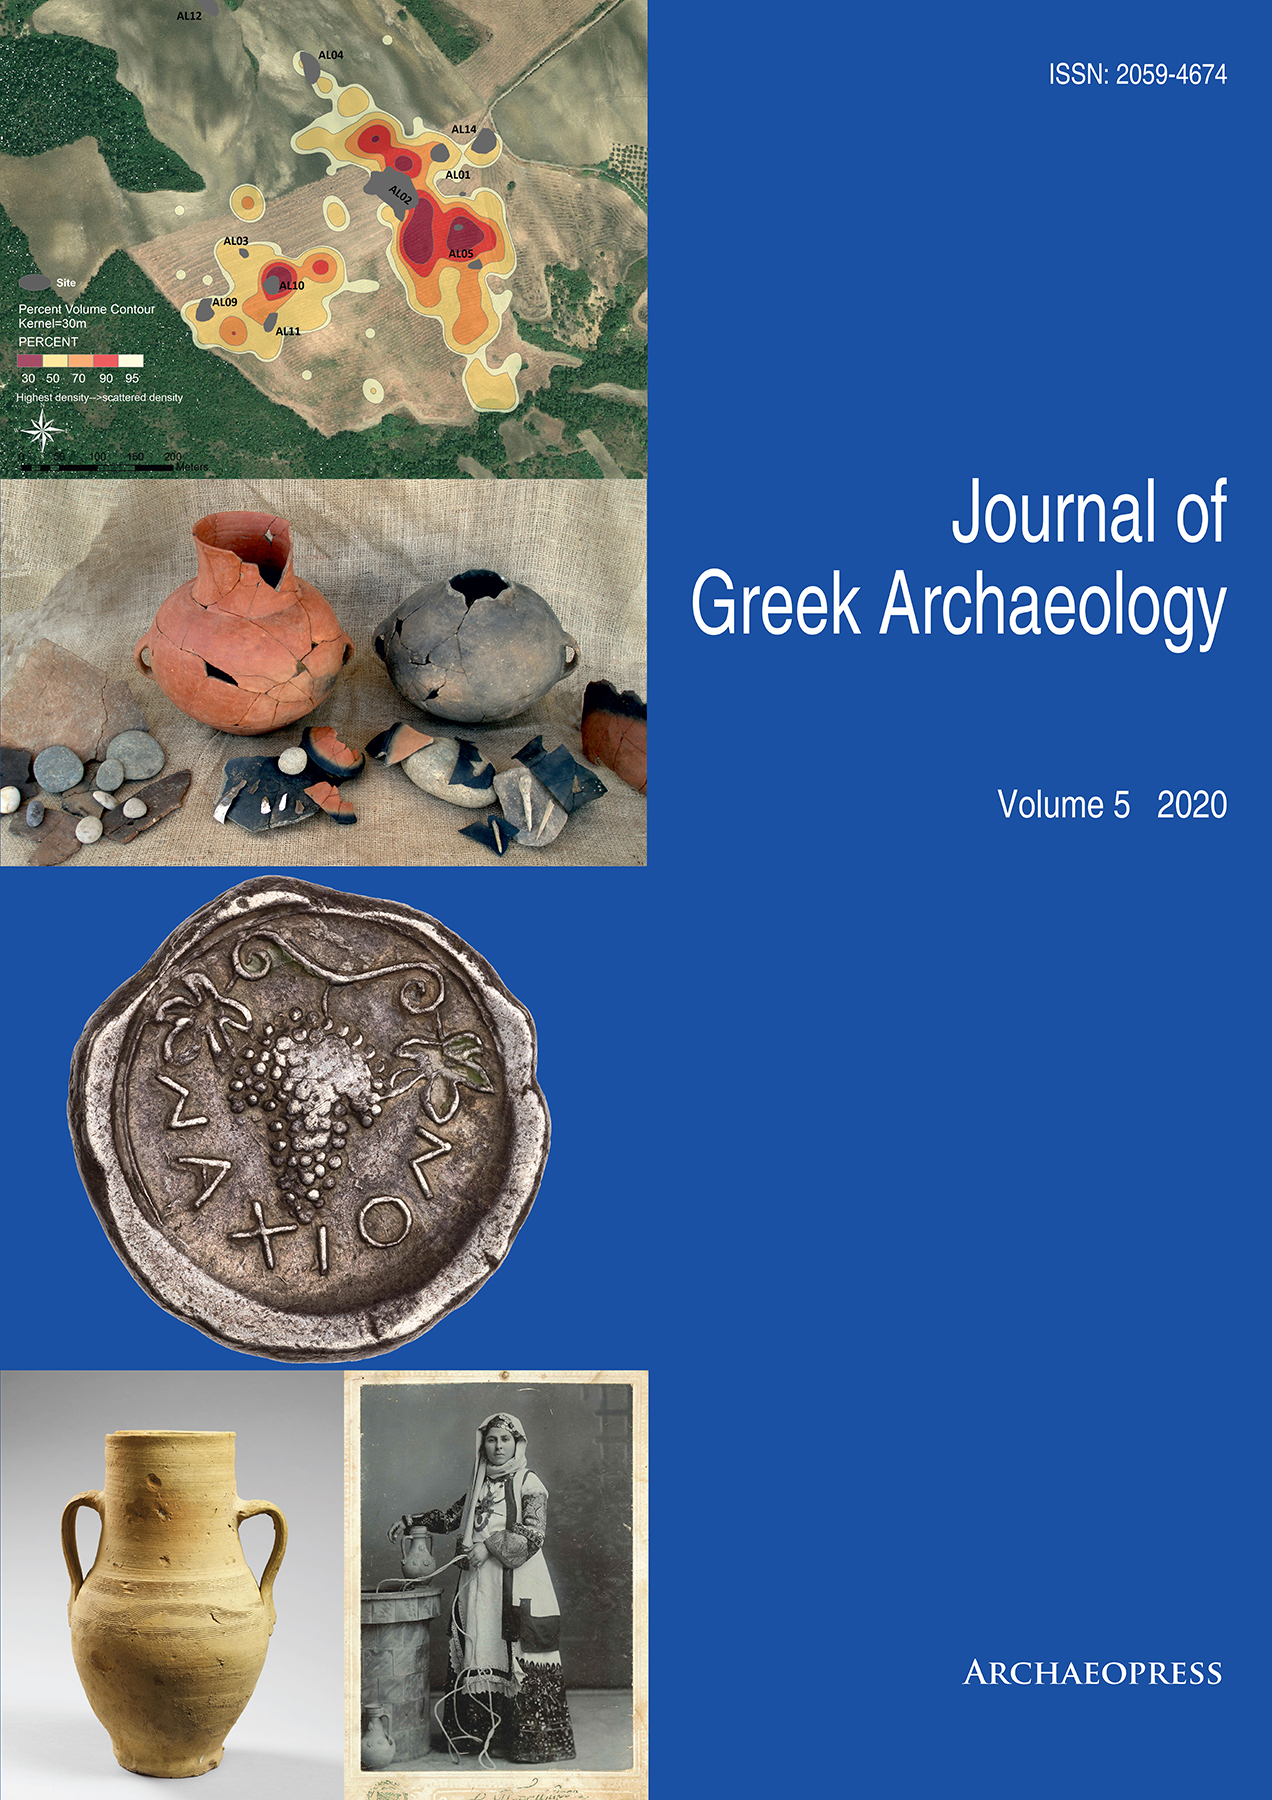 View Vol. 5 (2020): Journal of Greek Archaeology 2020